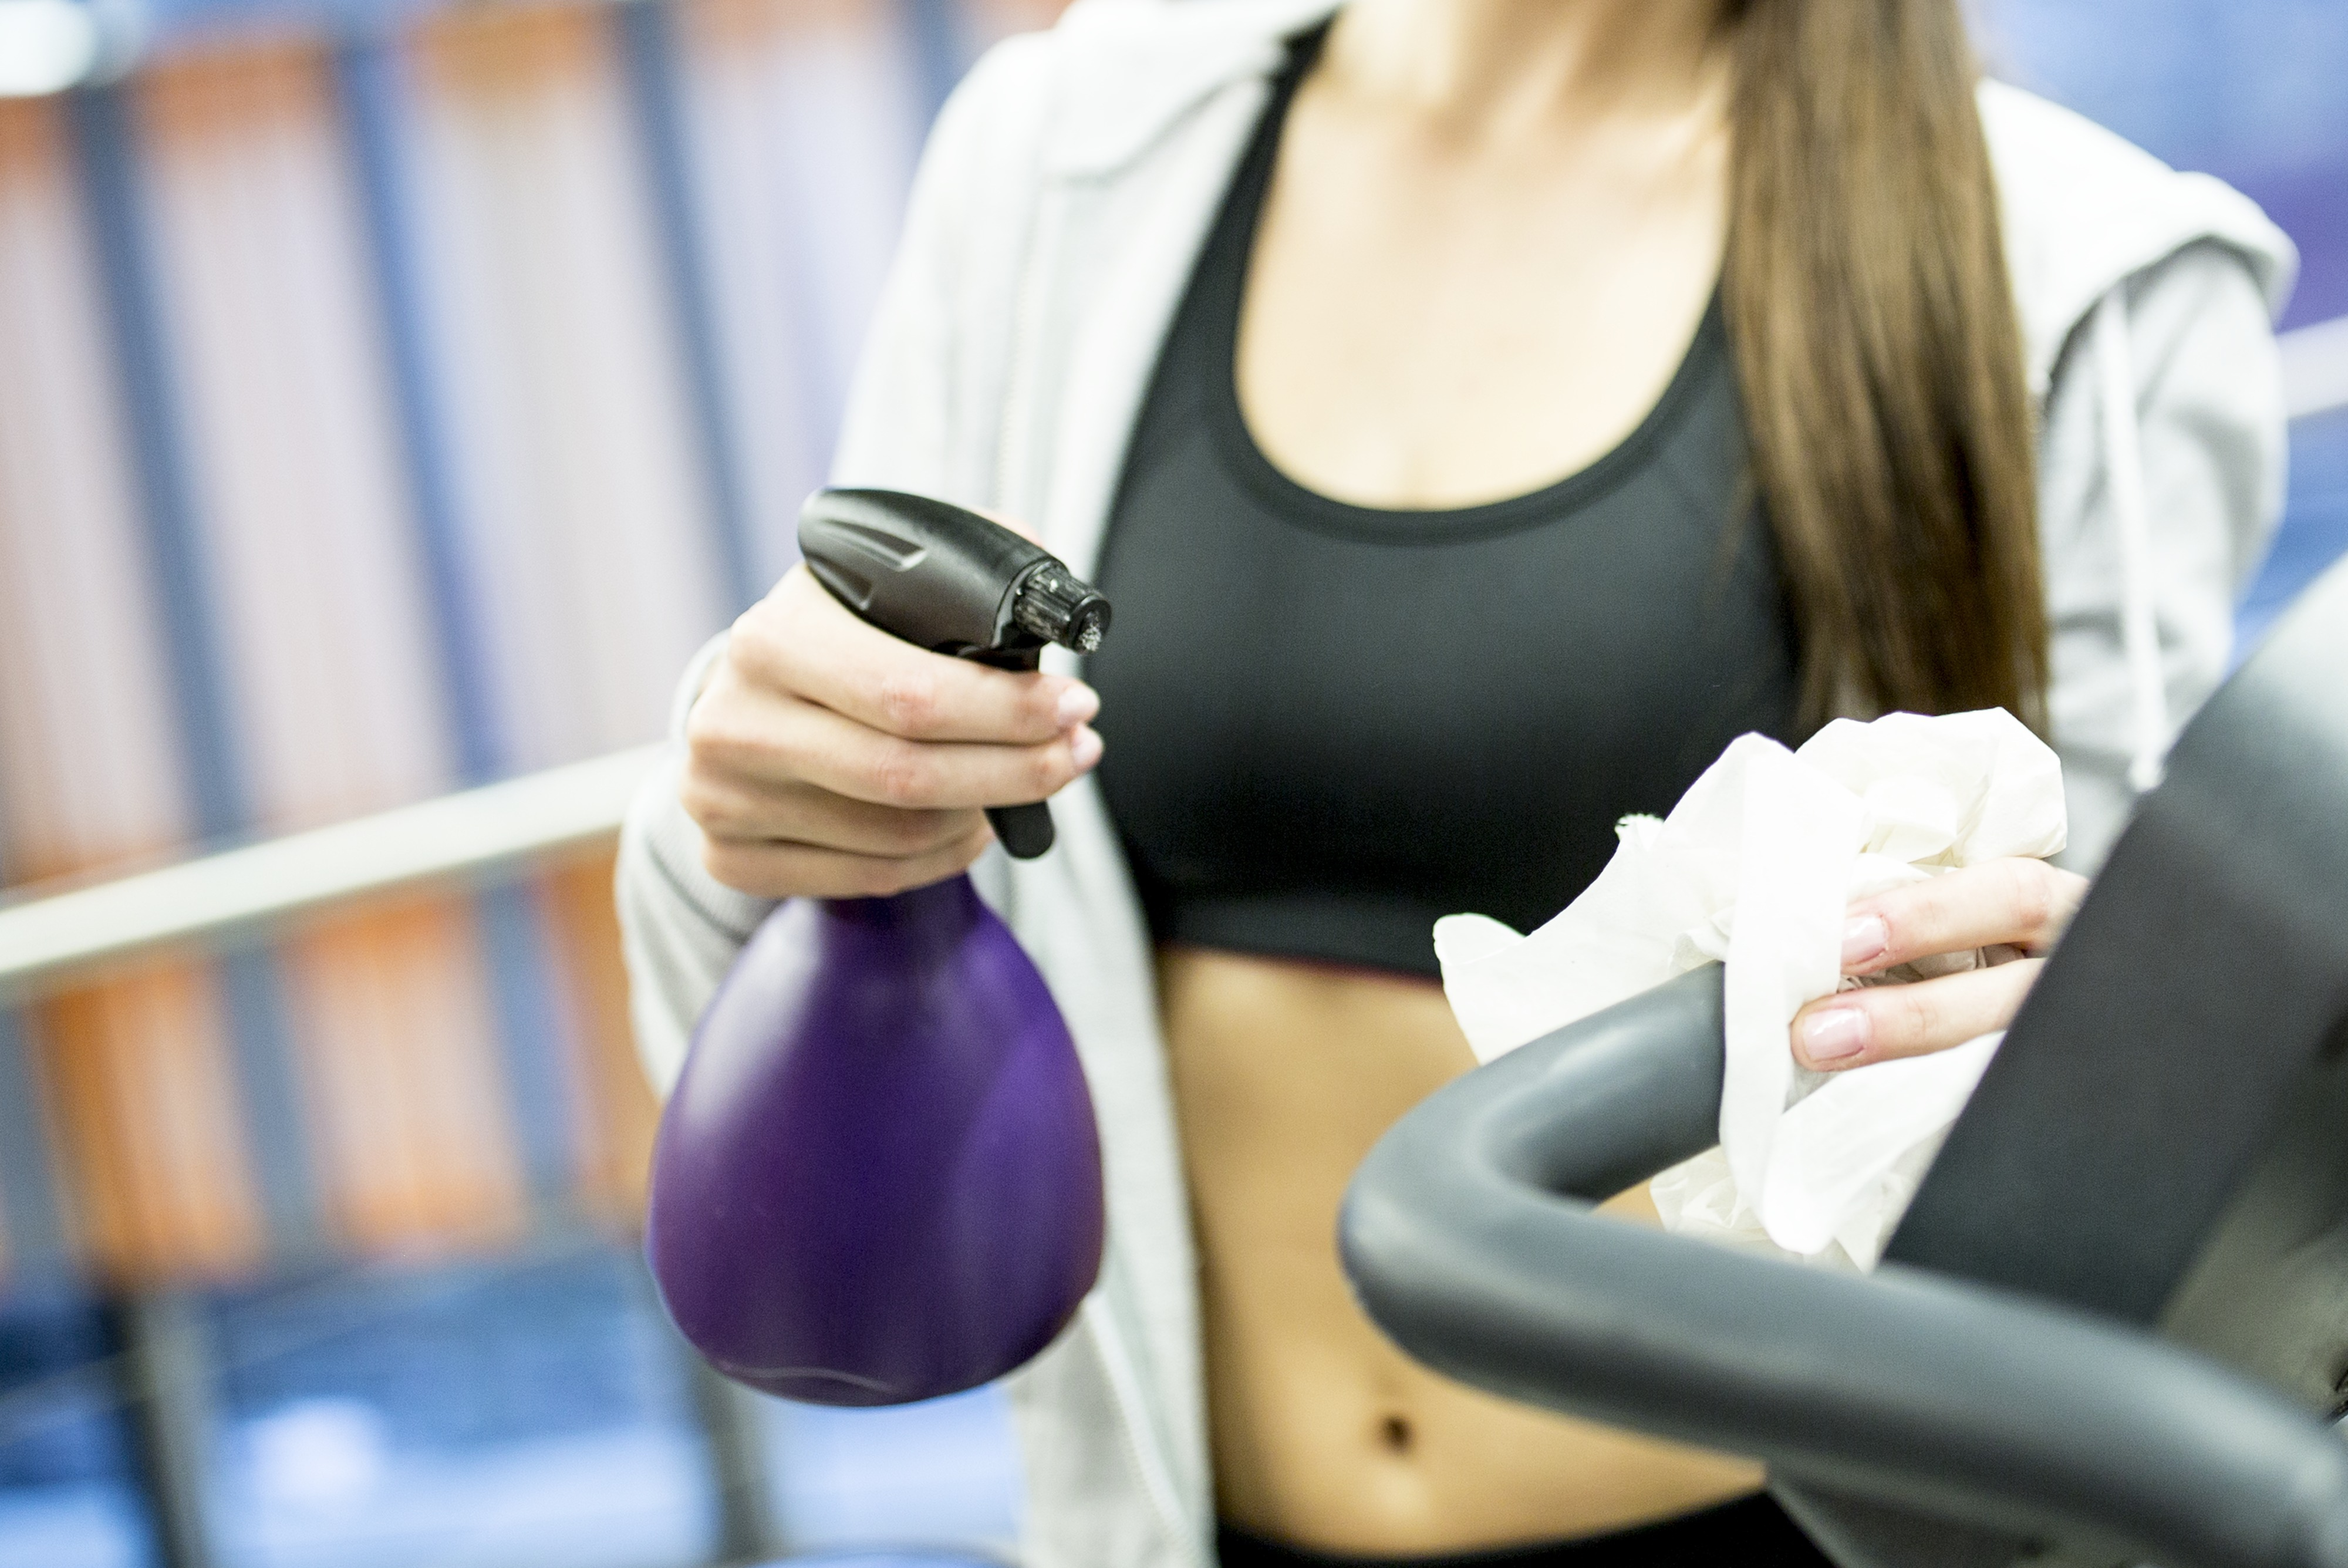 The common mistake that's leaving your gym kit riddled with infection-causing germs